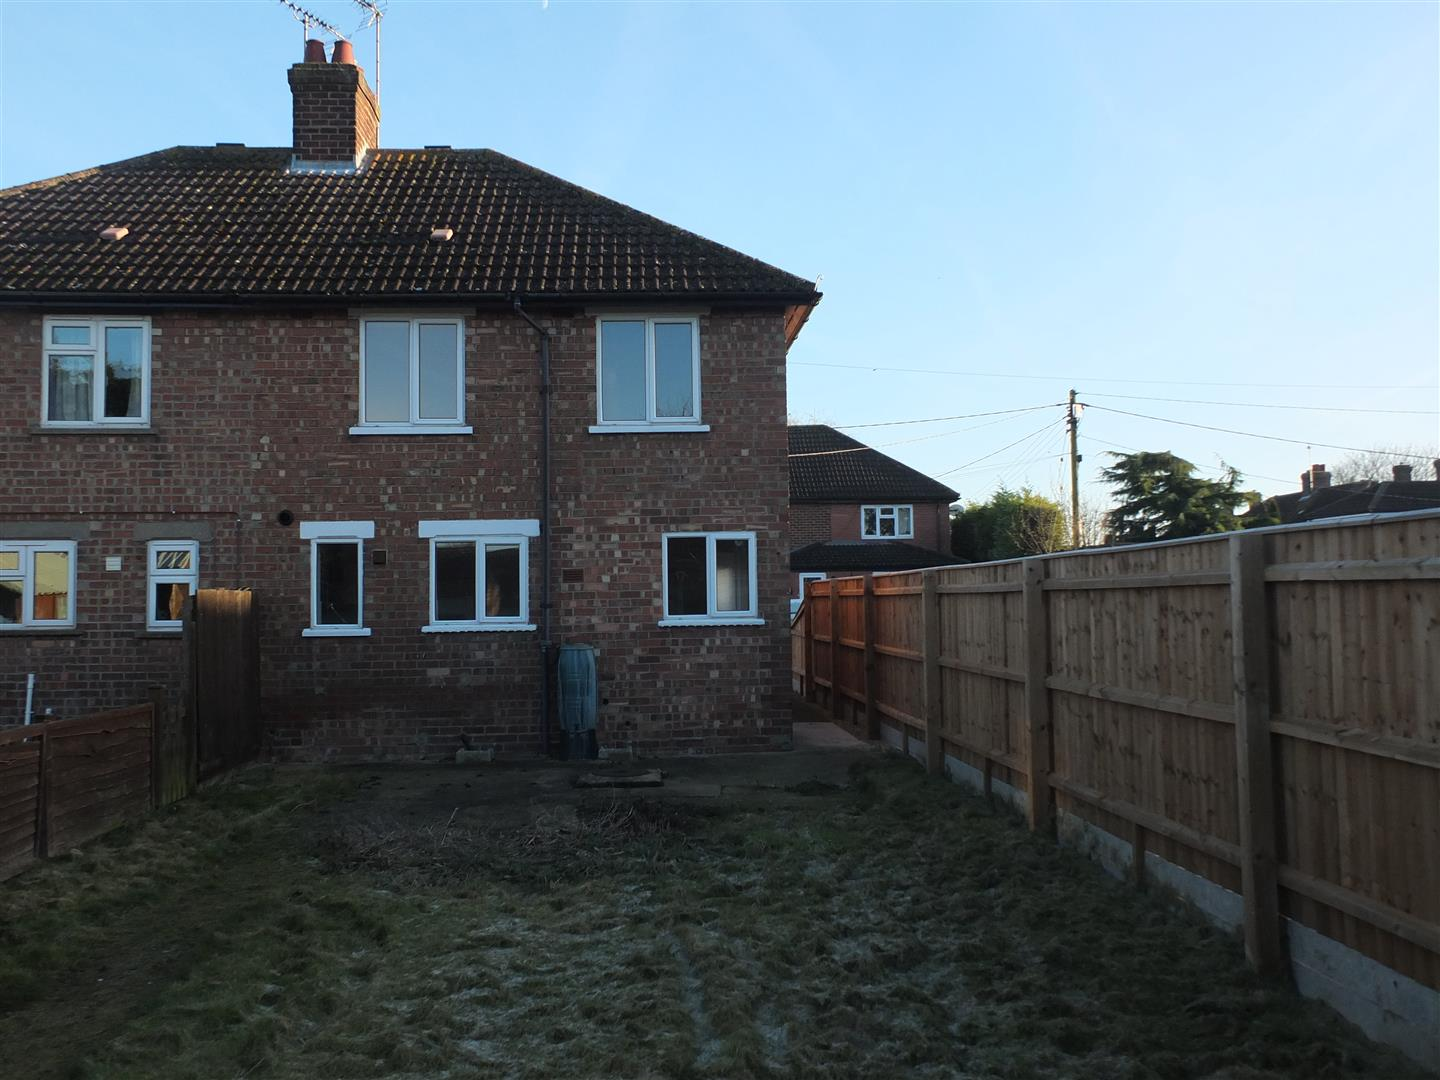 3 bed semi-detached house to rent in Long Sutton Spalding, PE12 9BT 9